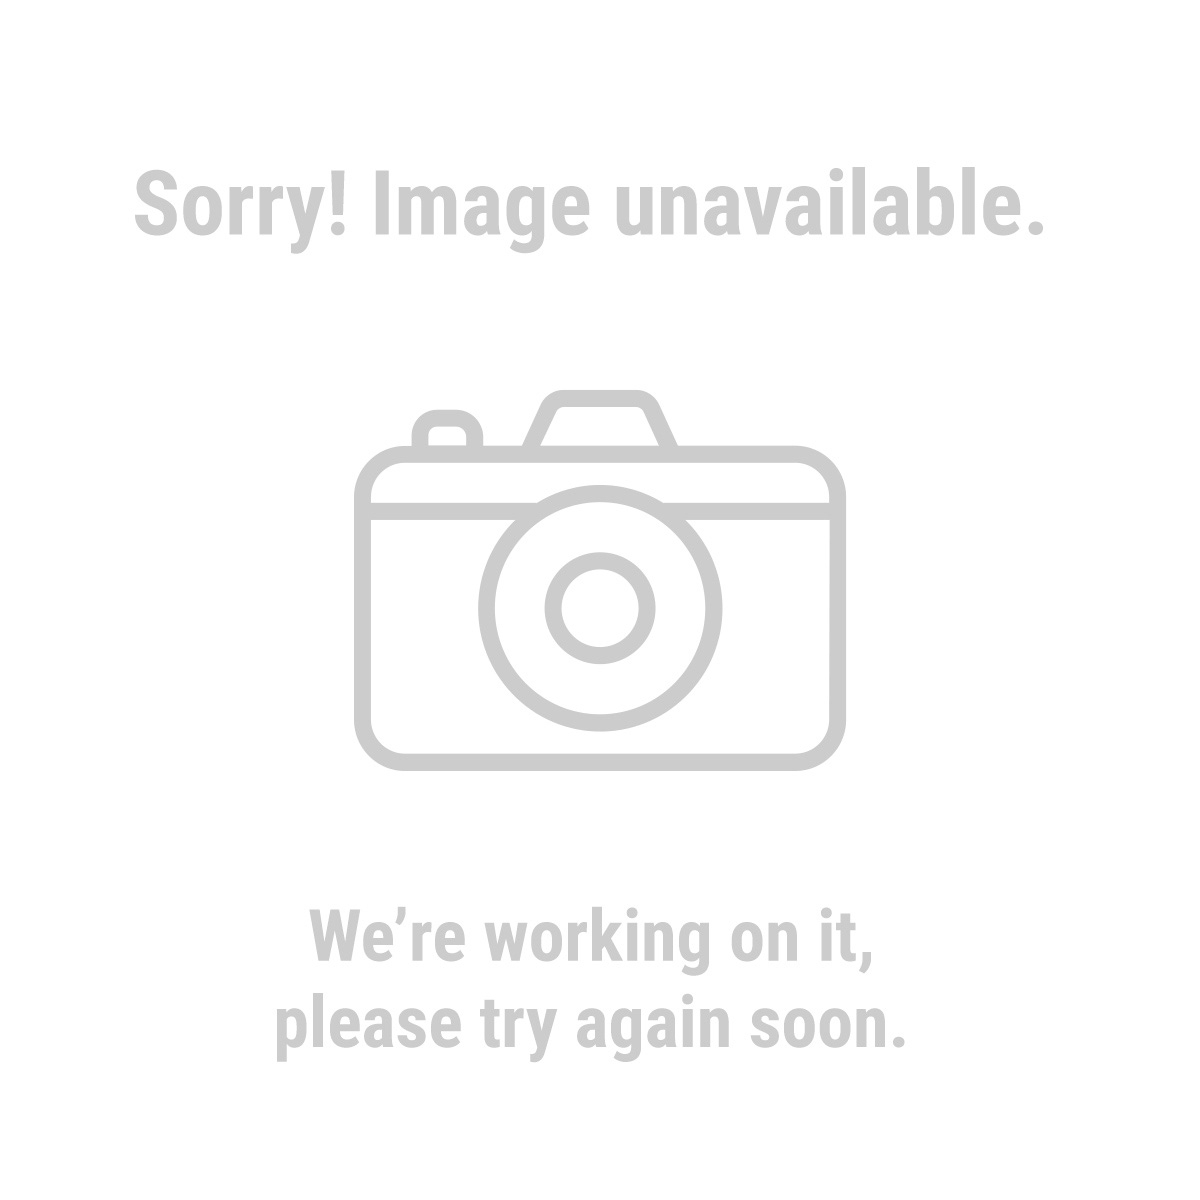 Admiral 62736 7-1/4 in. 48T Metal Cutting Circular Saw Blade